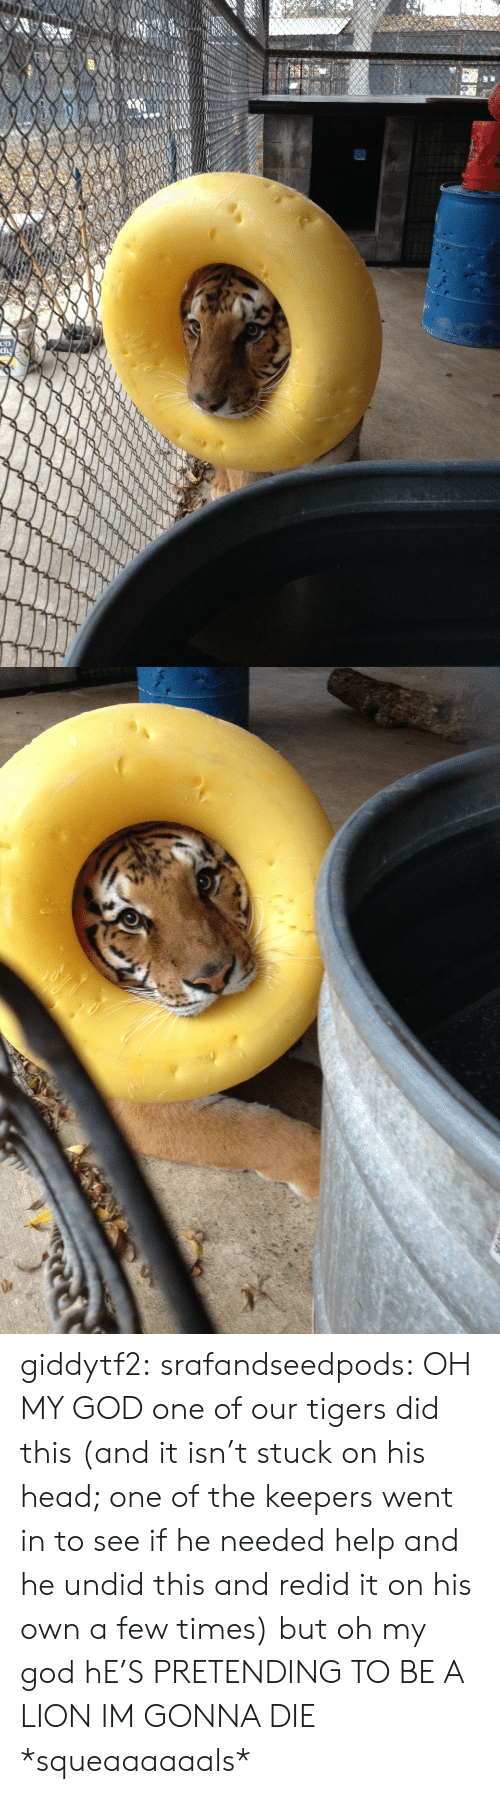 Im Gonna Die: giddytf2: srafandseedpods:  OH MY GOD one of our tigers did this (and it isn't stuck on his head; one of the keepers went in to see if he needed help and he undid this and redid it on his own a few times) but oh my god hE'S PRETENDING TO BE A LION IM GONNA DIE  *squeaaaaaals*